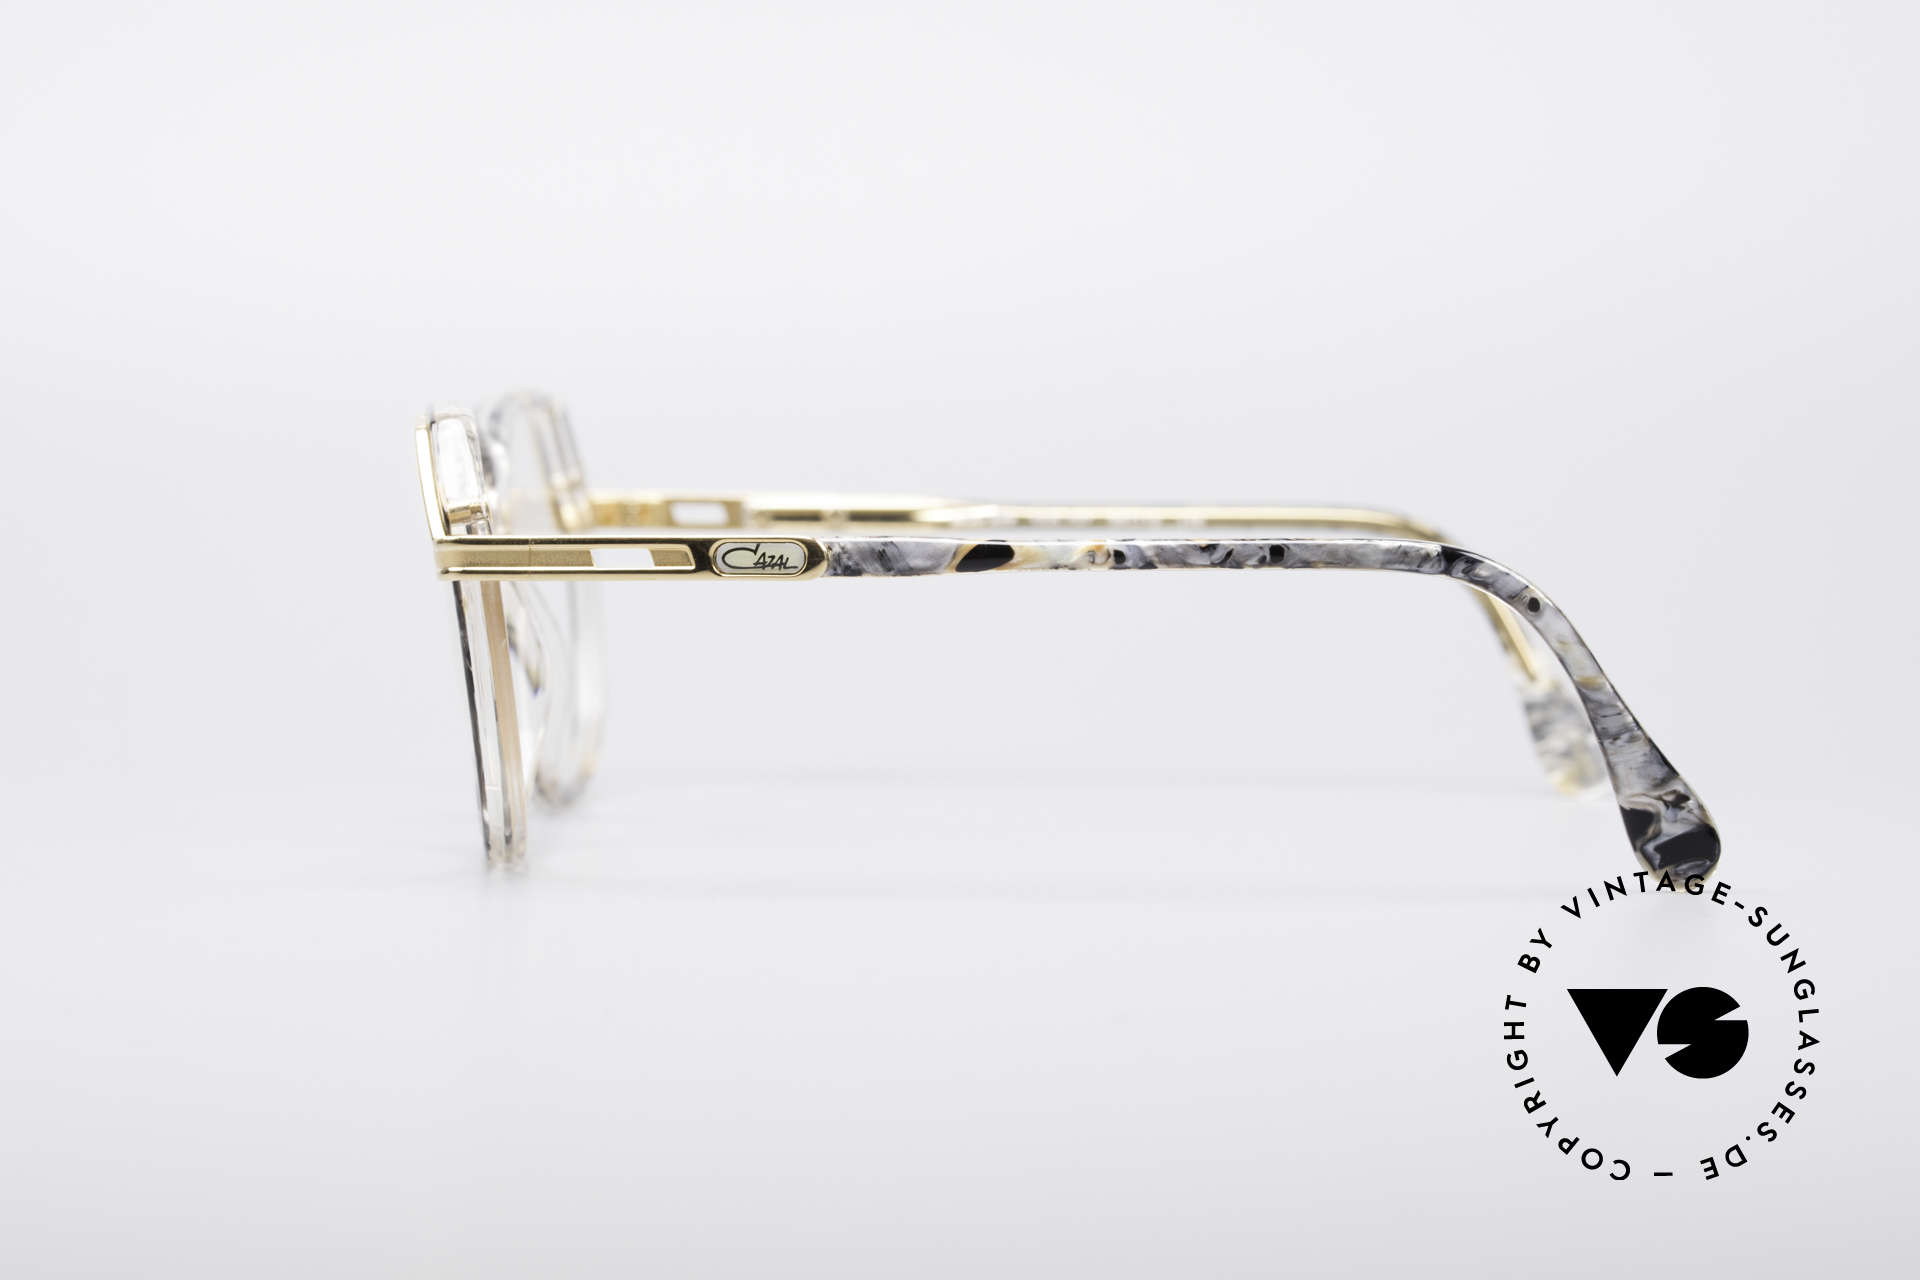 Cazal 339 No Retro 90's Vintage Specs, NO retro glasses, but an authentic old rarity, Made for Women